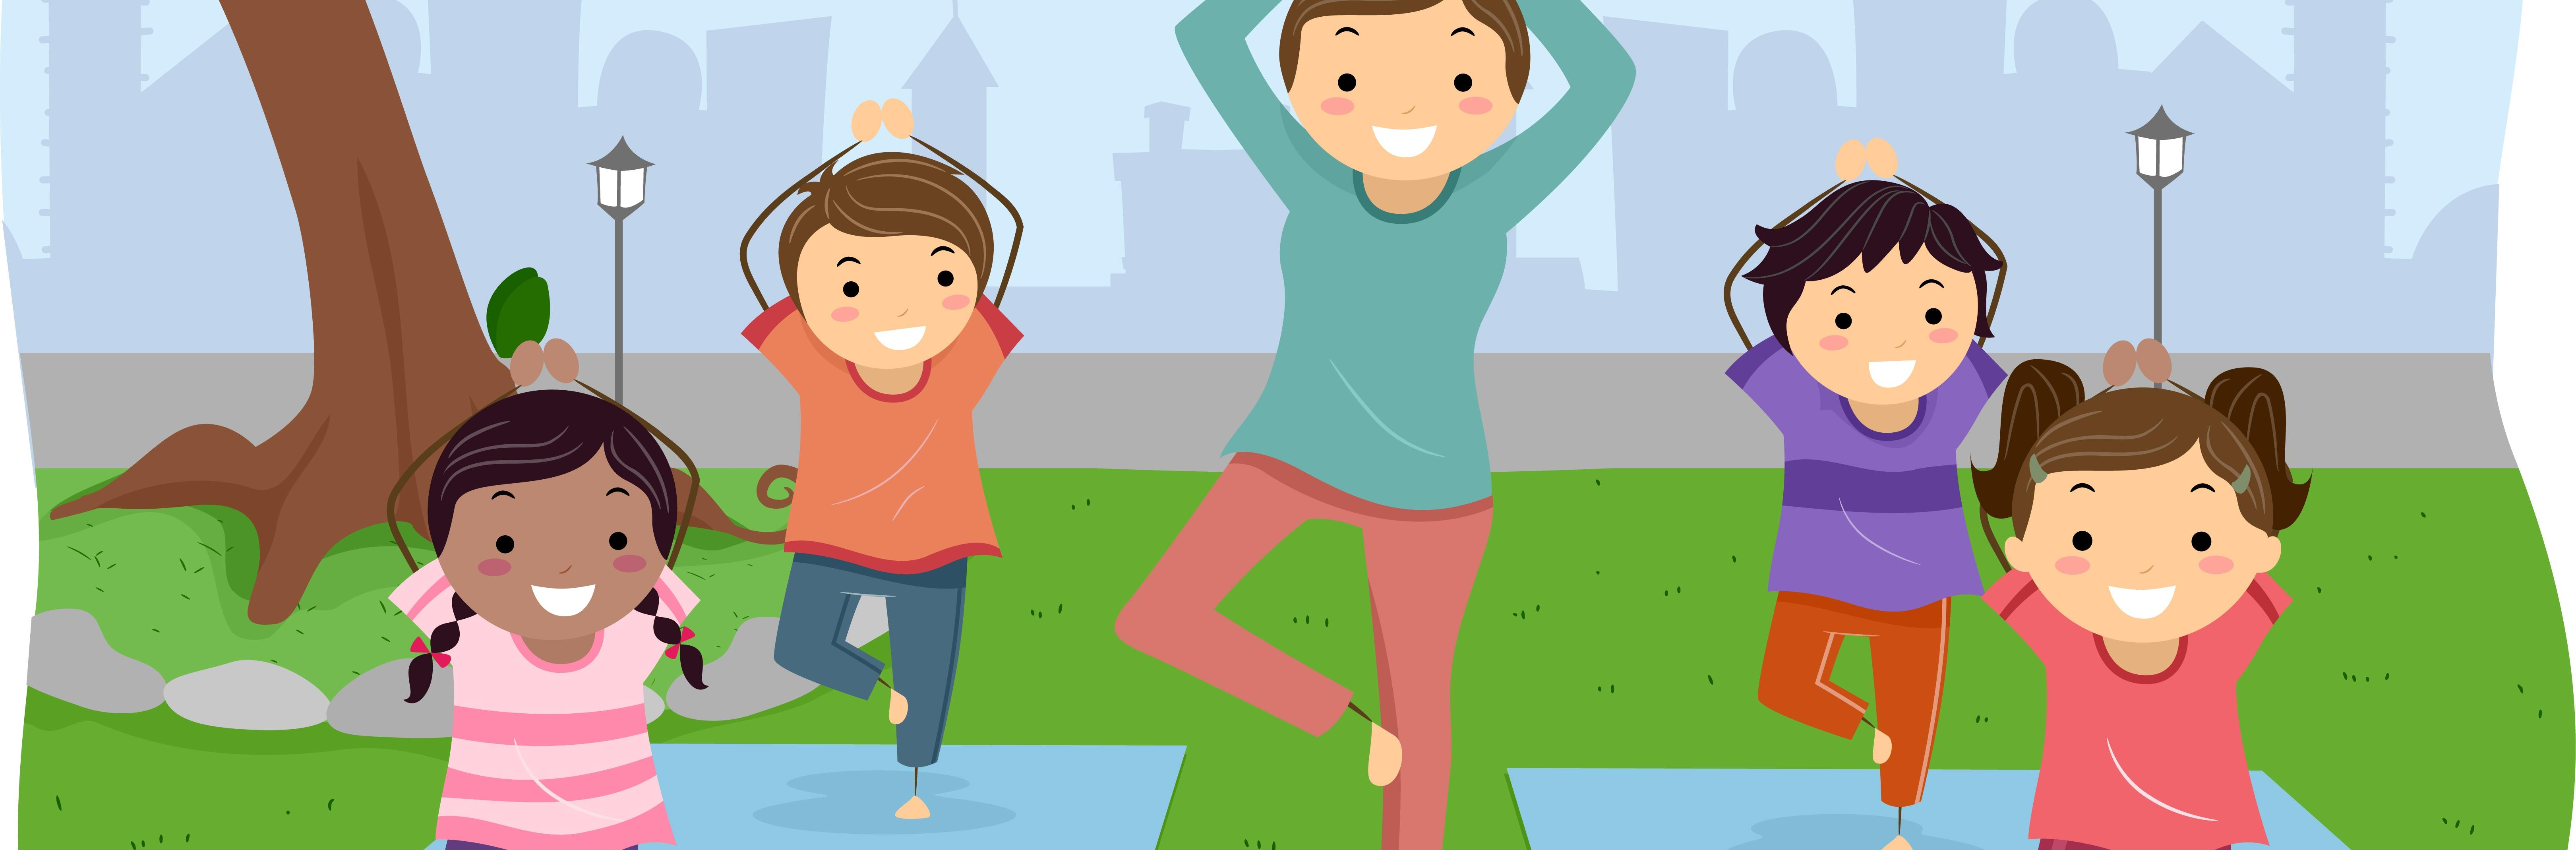 5 Simple Yoga Poses For Kids And Their Benefits Hello Parent